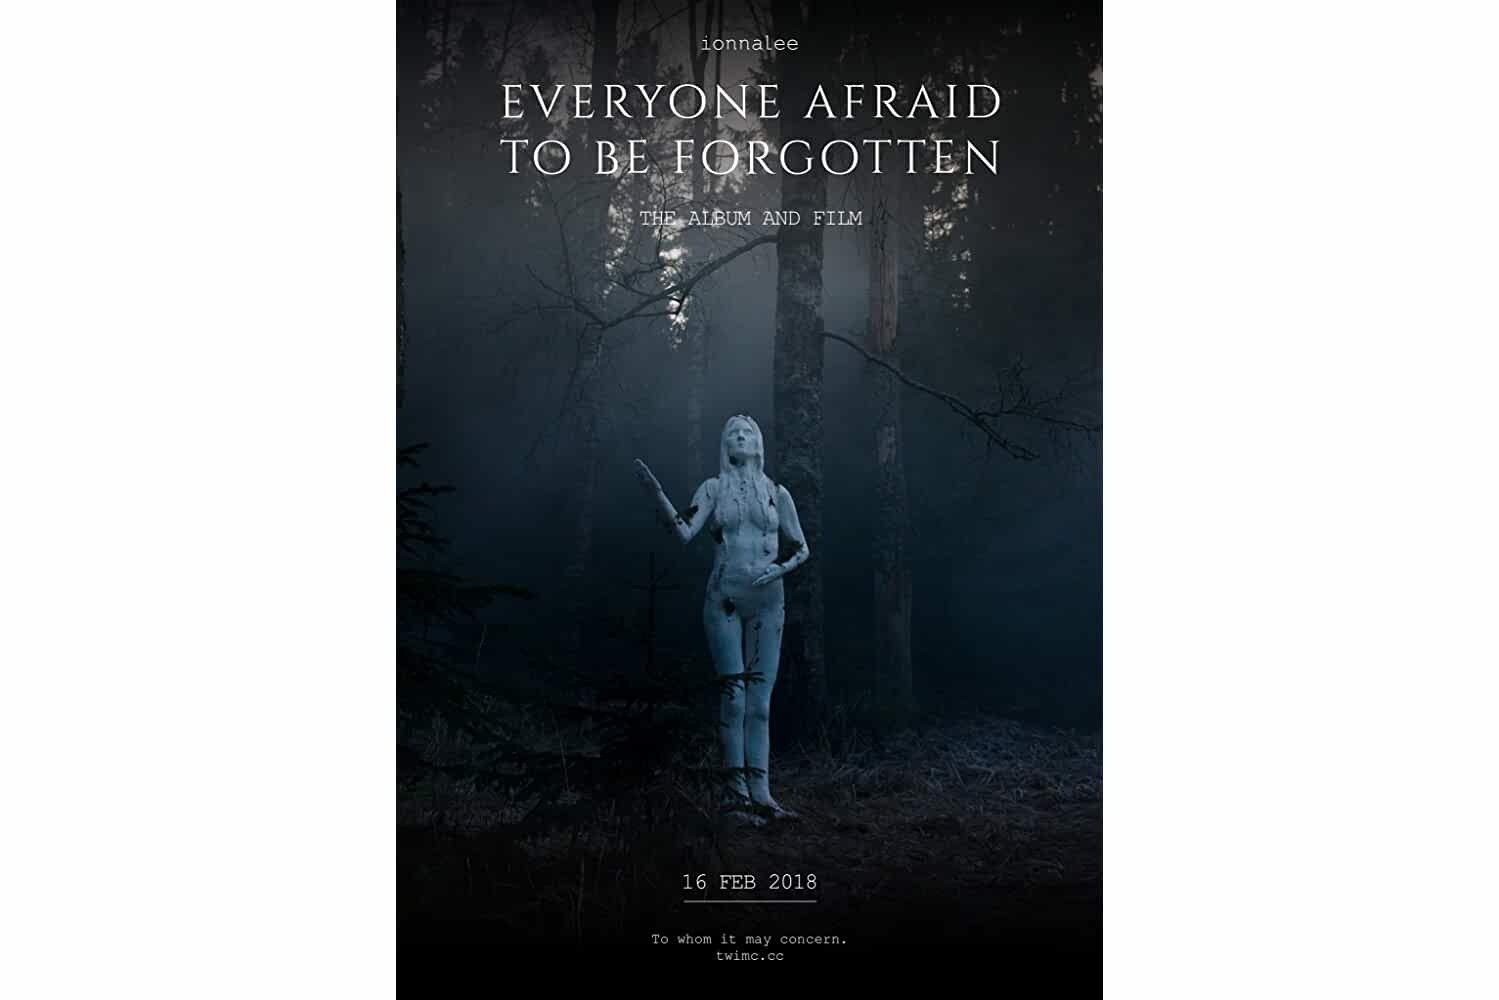 EVERYONE AFRAID TO BE FORGOTTEN (2018)